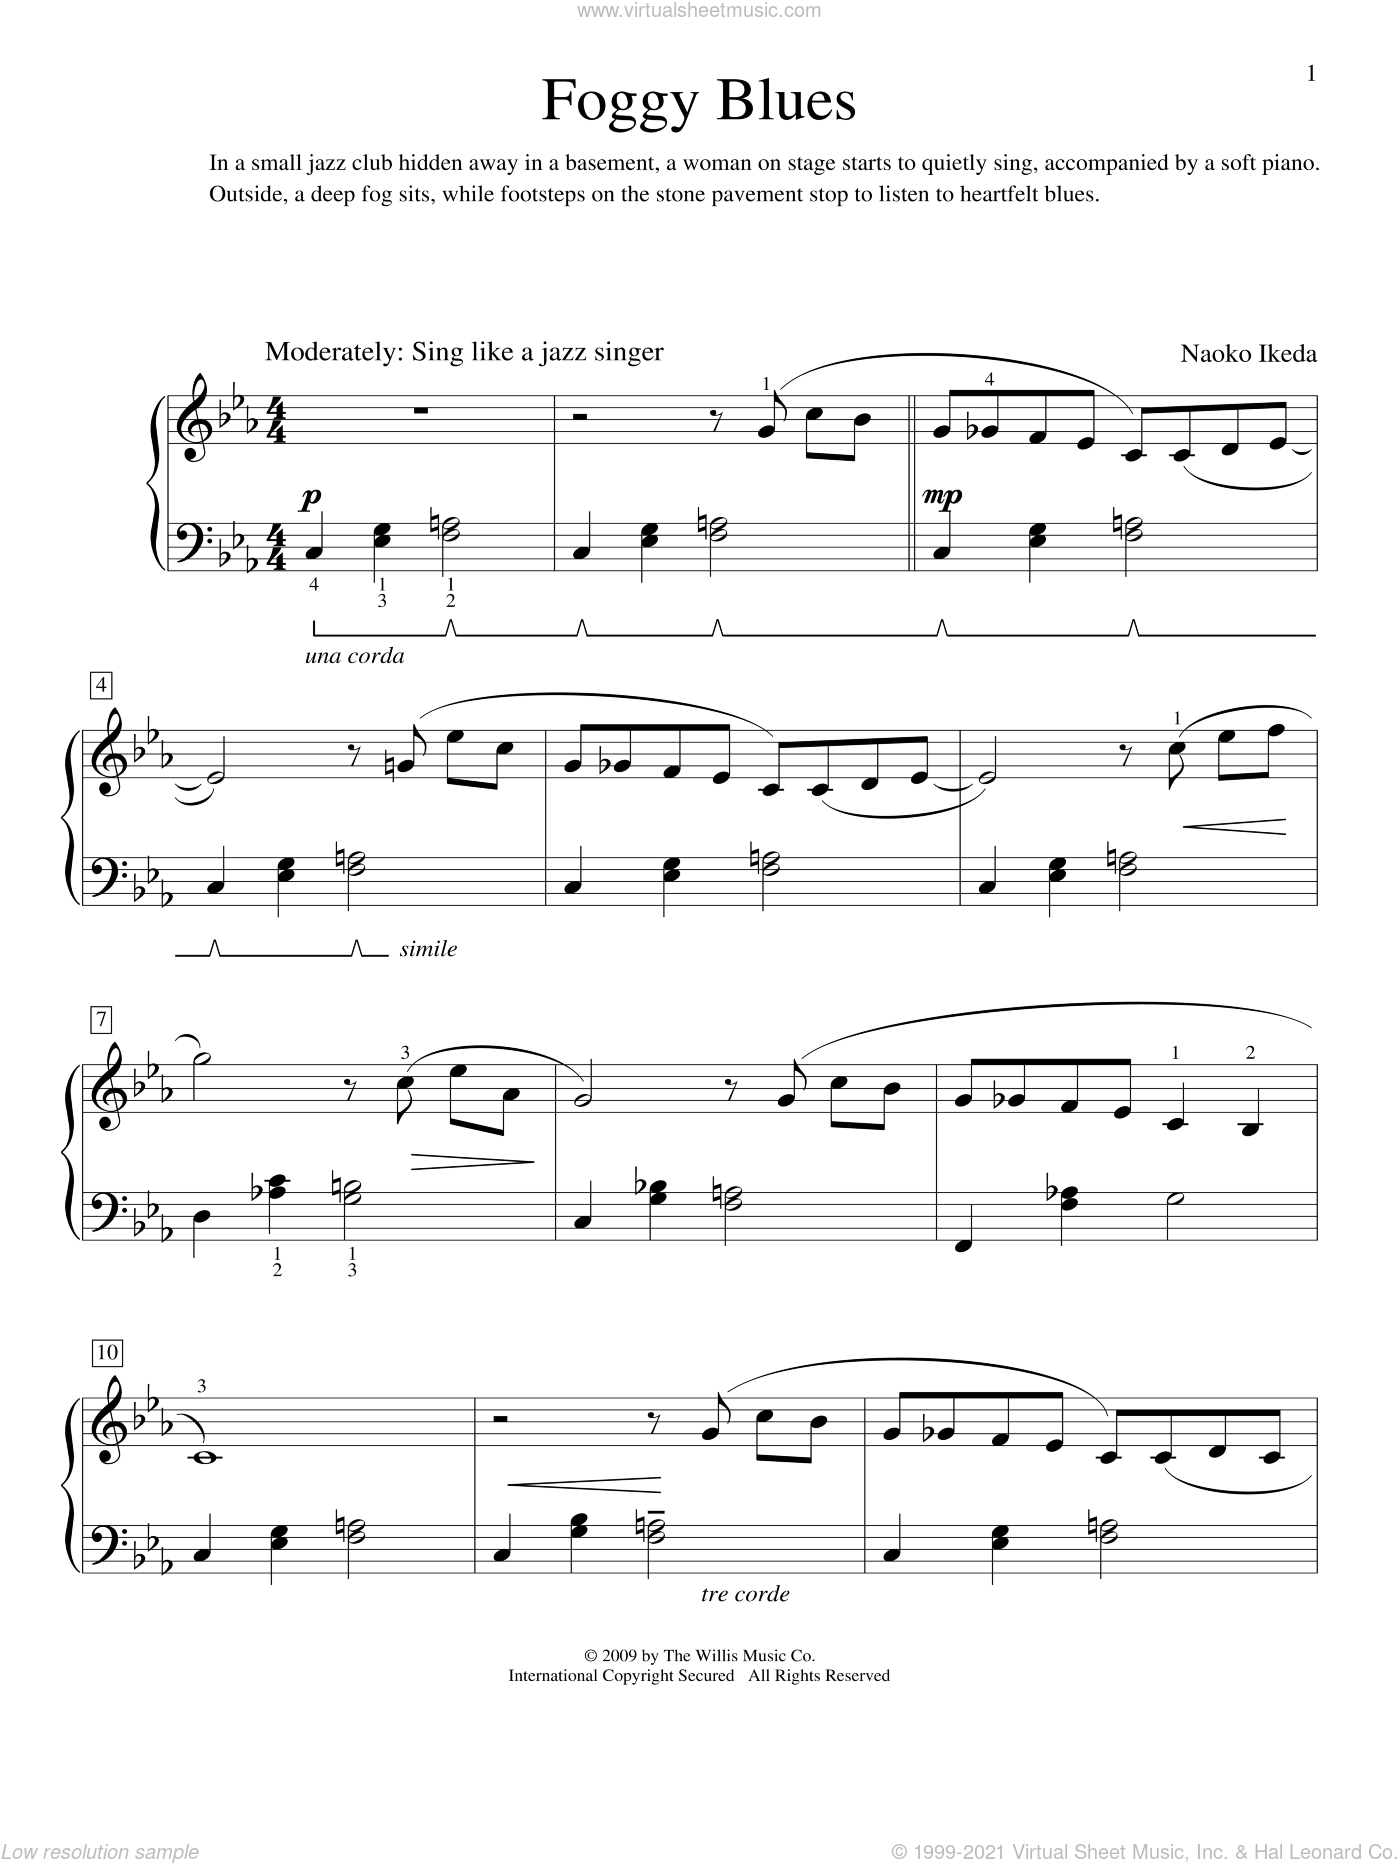 Foggy Blues sheet music for piano solo (elementary) by Naoko Ikeda